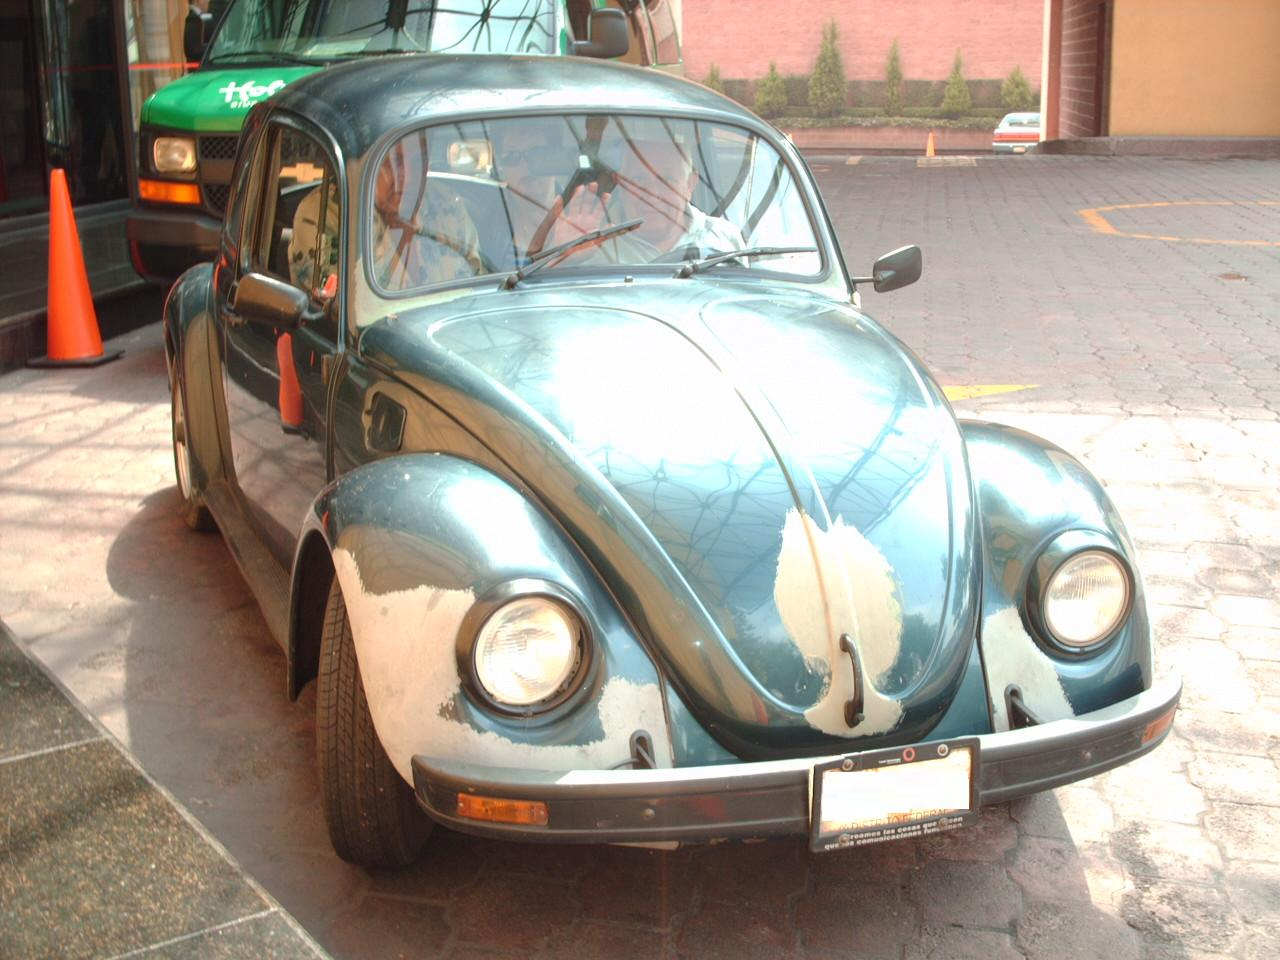 58 Vw Bug 1958 Volkswagen Beetle Classics For Sale On Mexican Wiring Diagram File From Mexico Wikimedia Commons